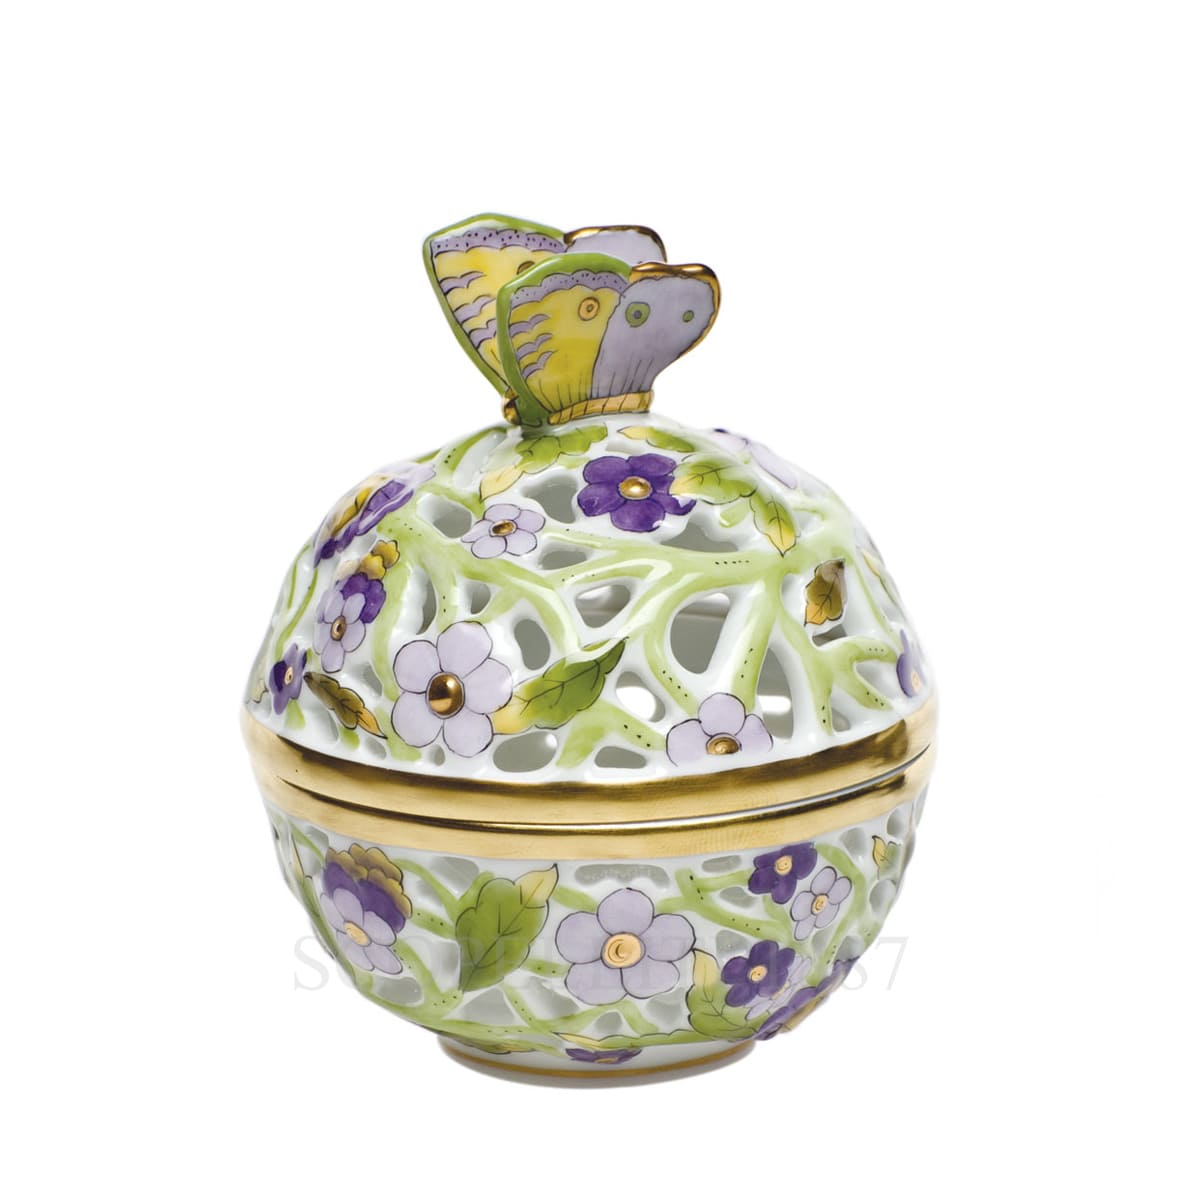 herend handpainted porcelain round box with butterfly